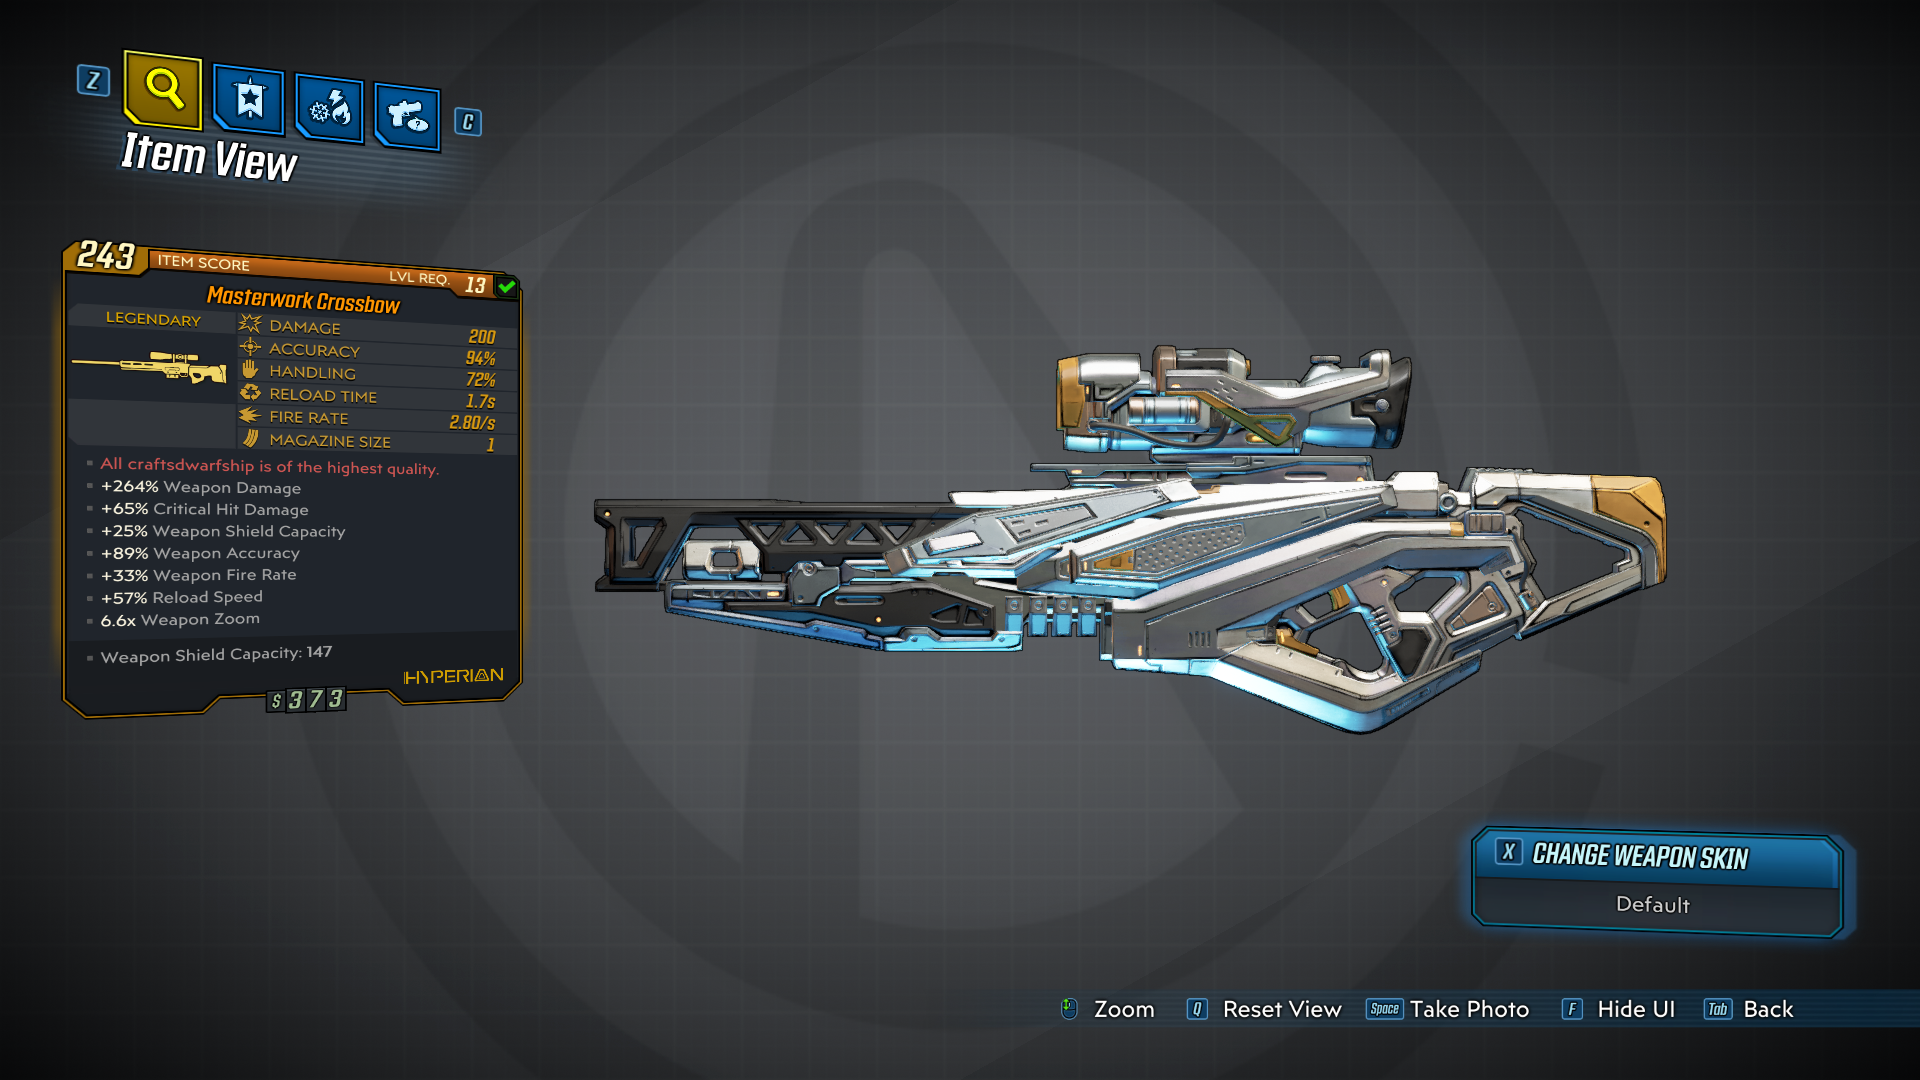 Borderlands 3   Masterwork Crossbow Legendary Weapon Guide (One In The Chamber!)